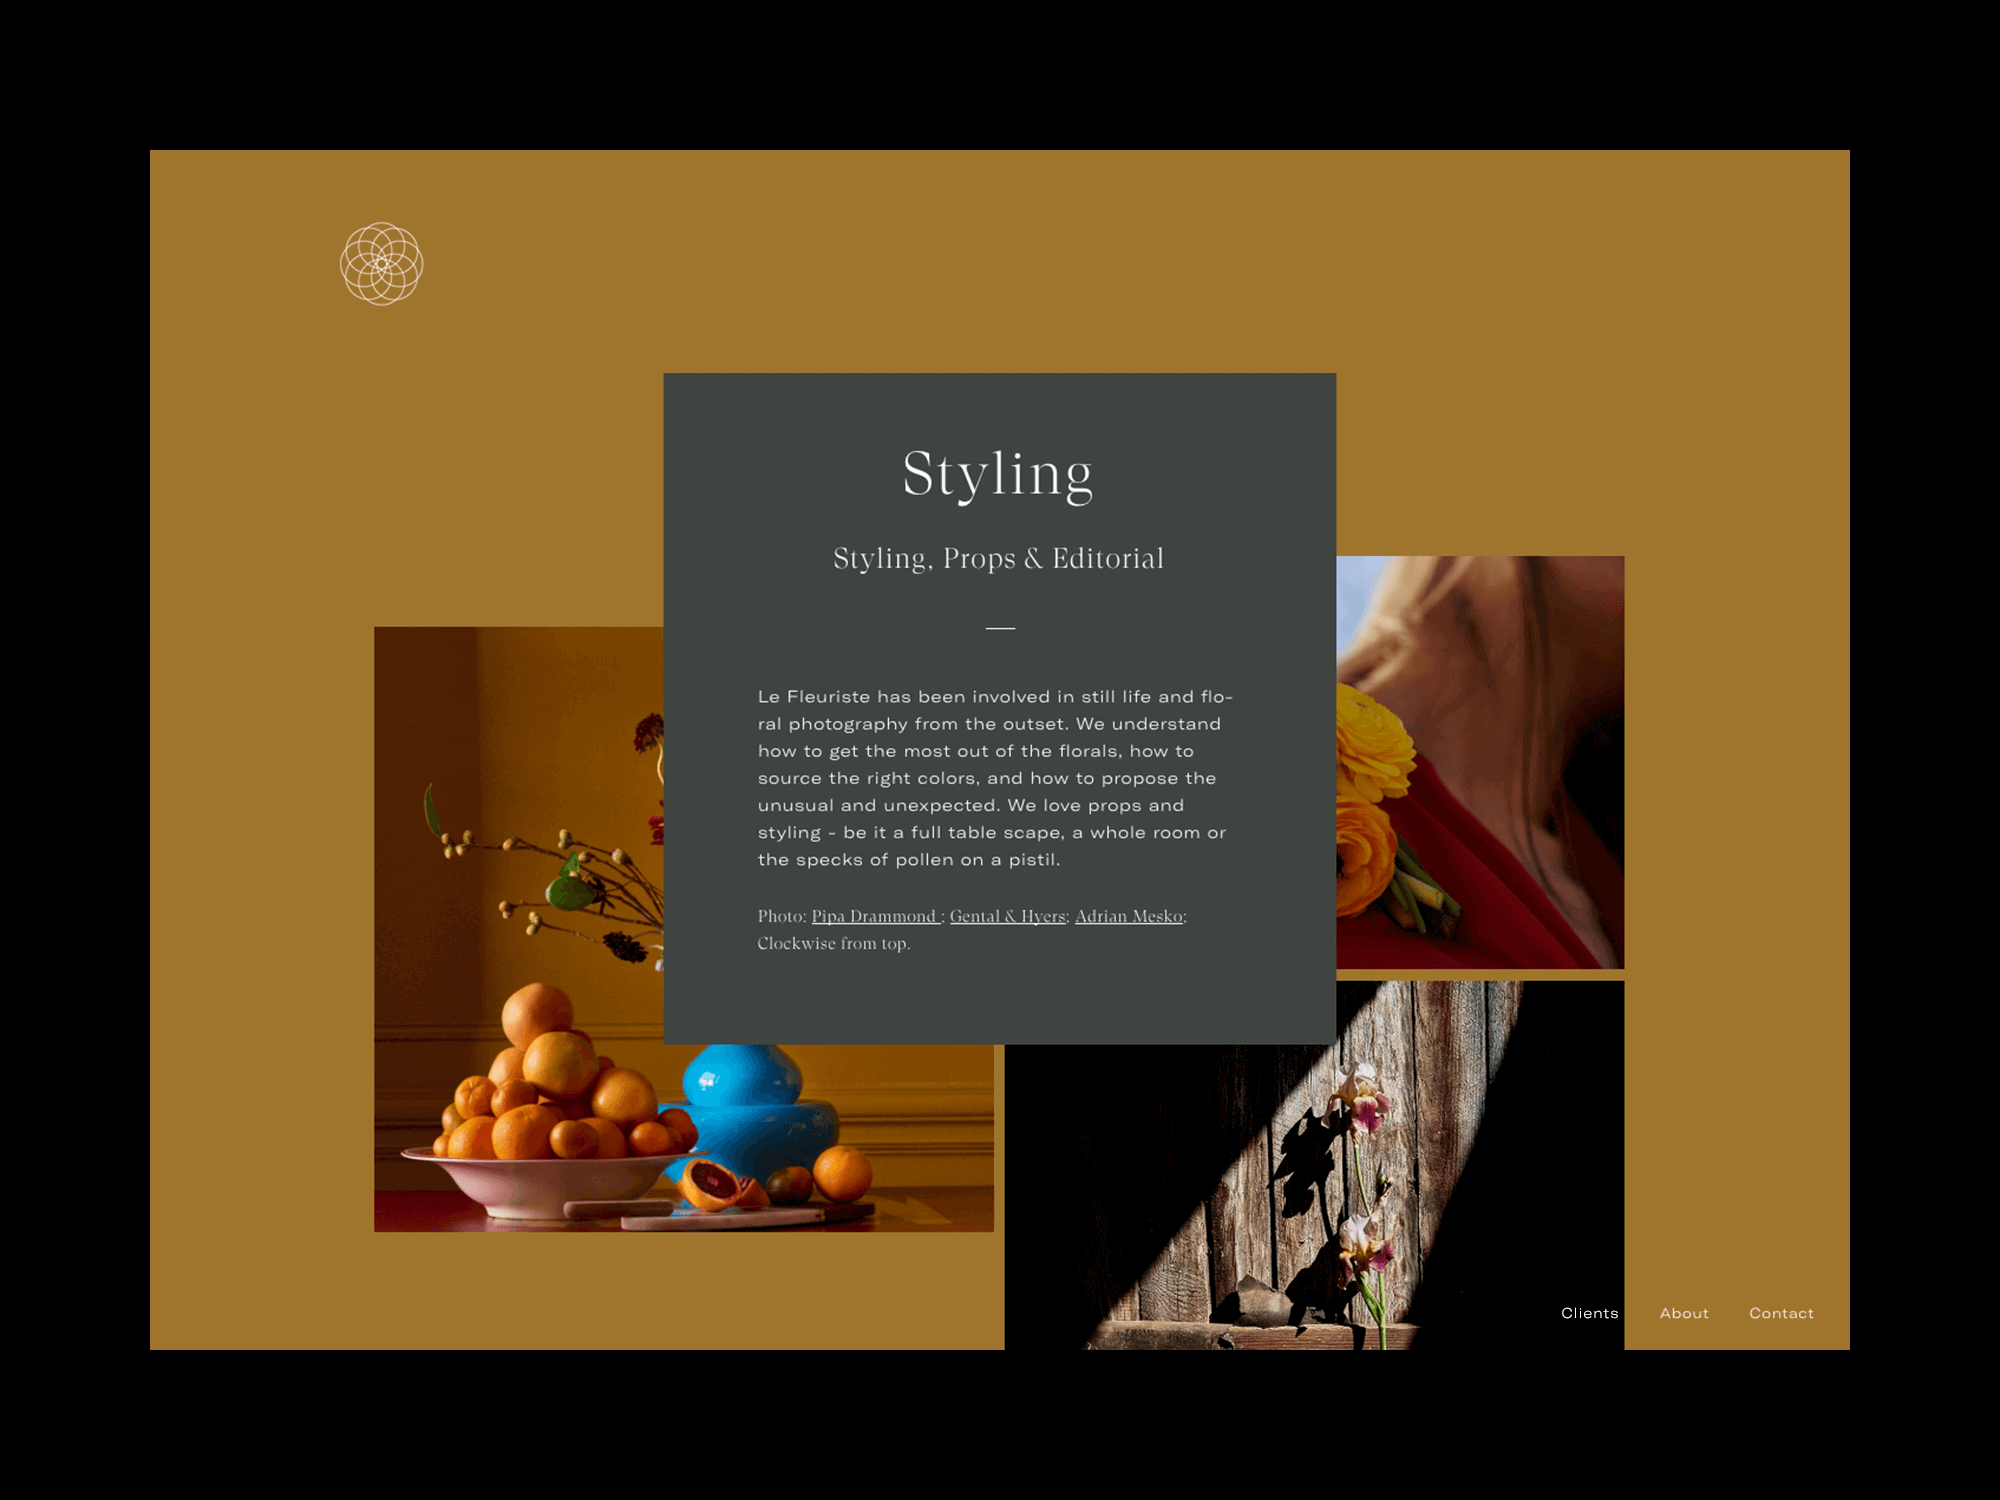 Le Fleuriste styling section of website